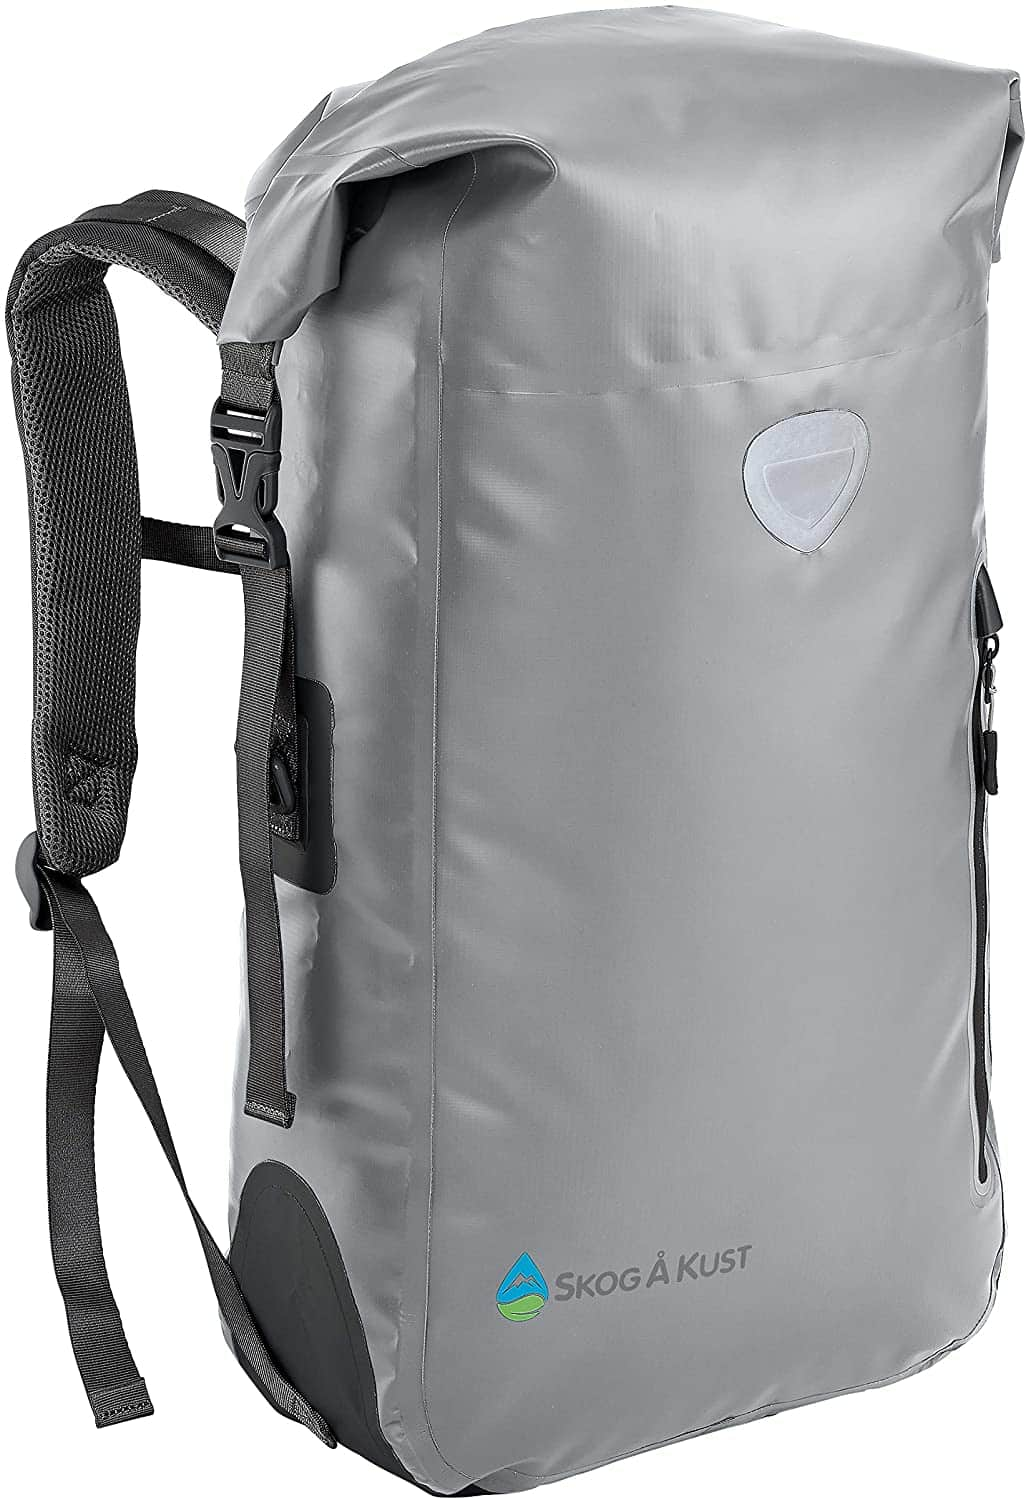 Skog Å Kust BackSåk Waterproof Floating Backpack